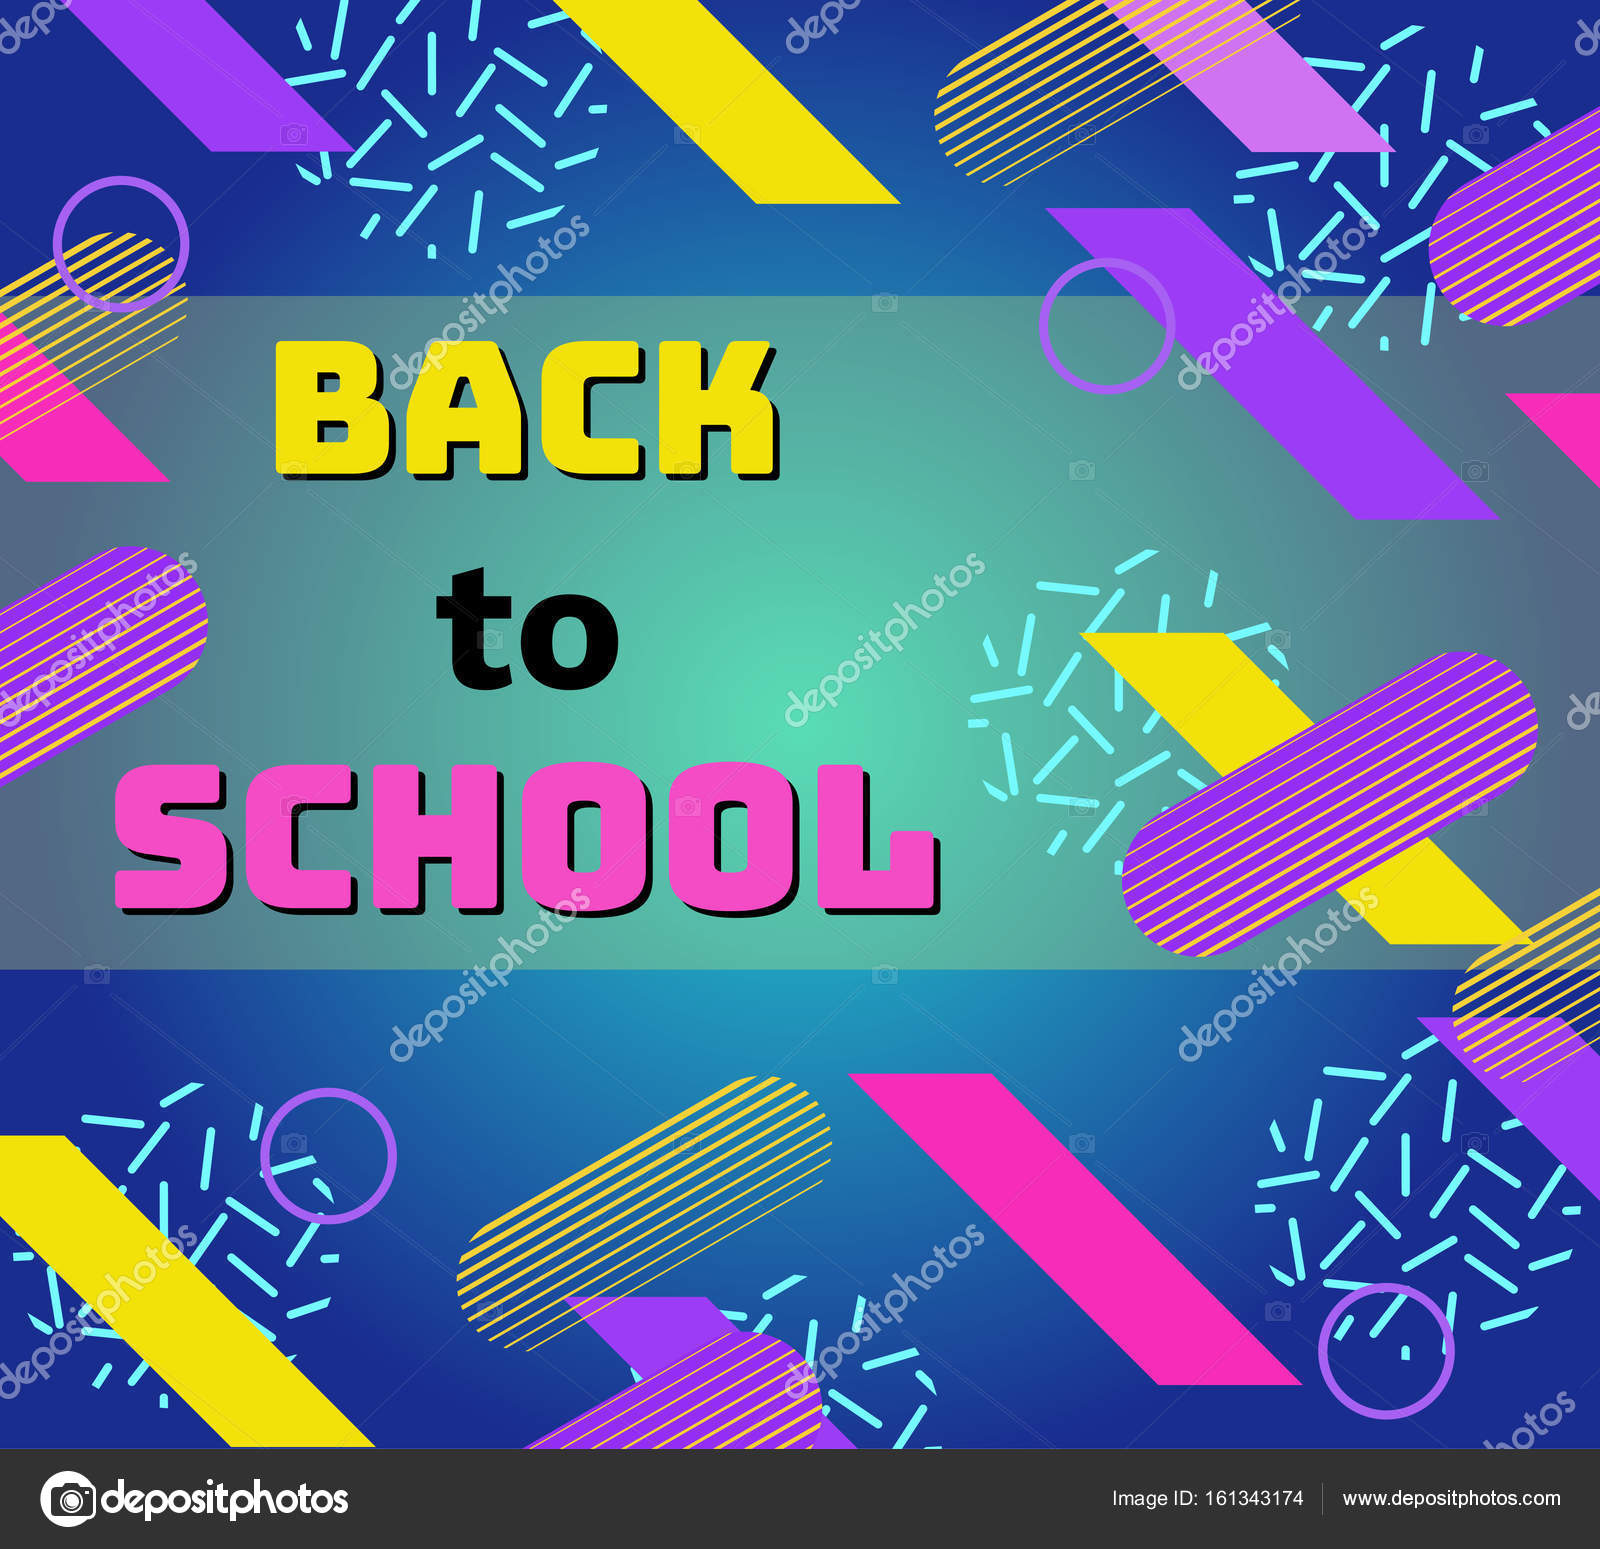 Back To School Banner In Trendy 90s Geometric Style With Lines And